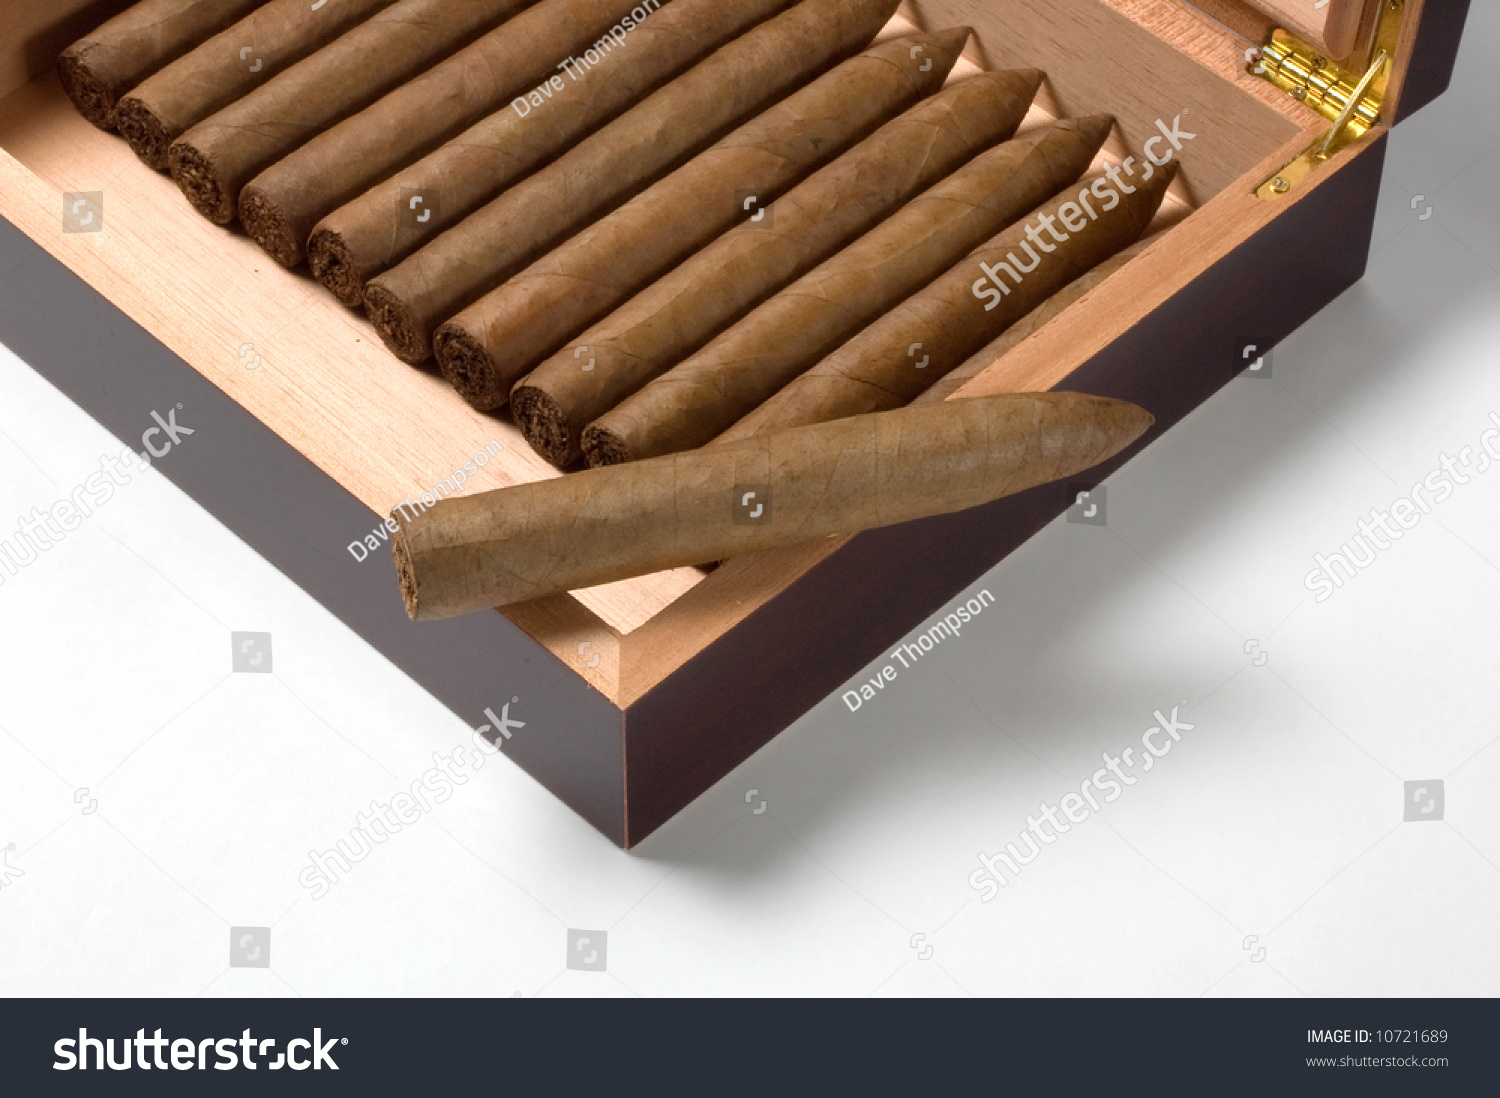 how to cut a hand rolled cigar